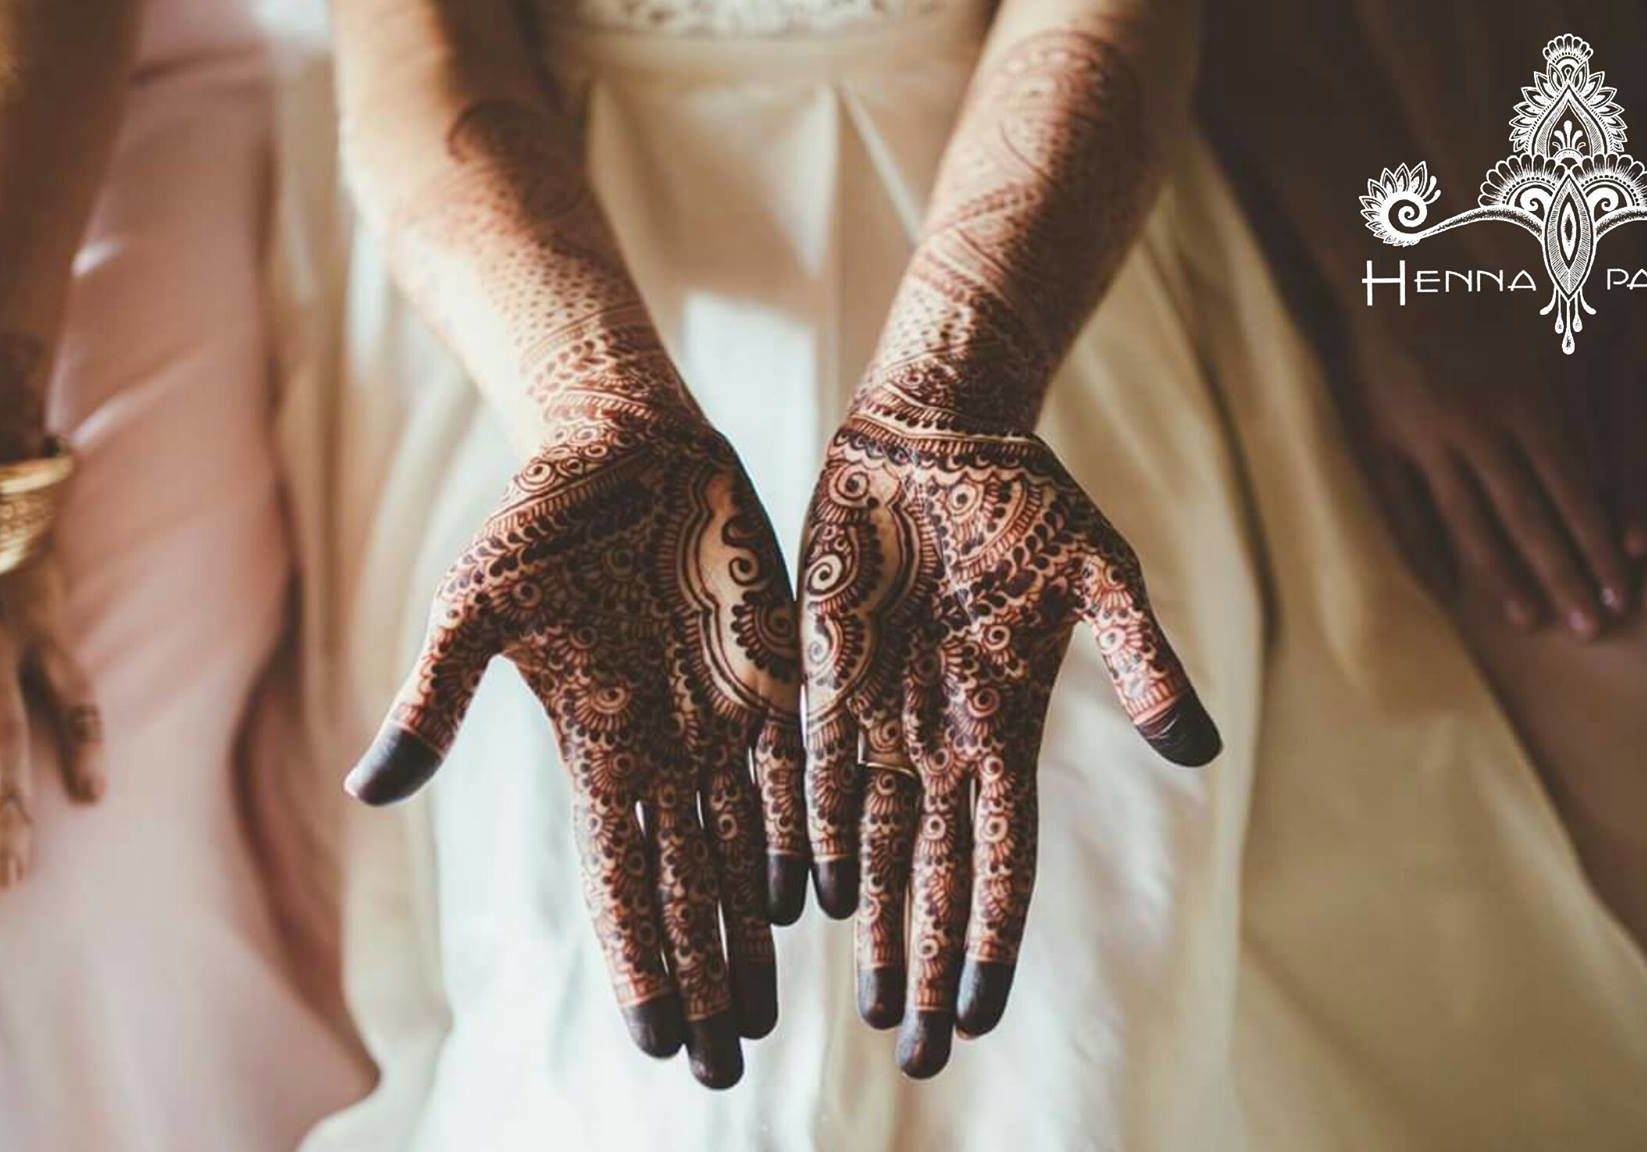 Bridal Mehndi Charges : Services prices henna paradise